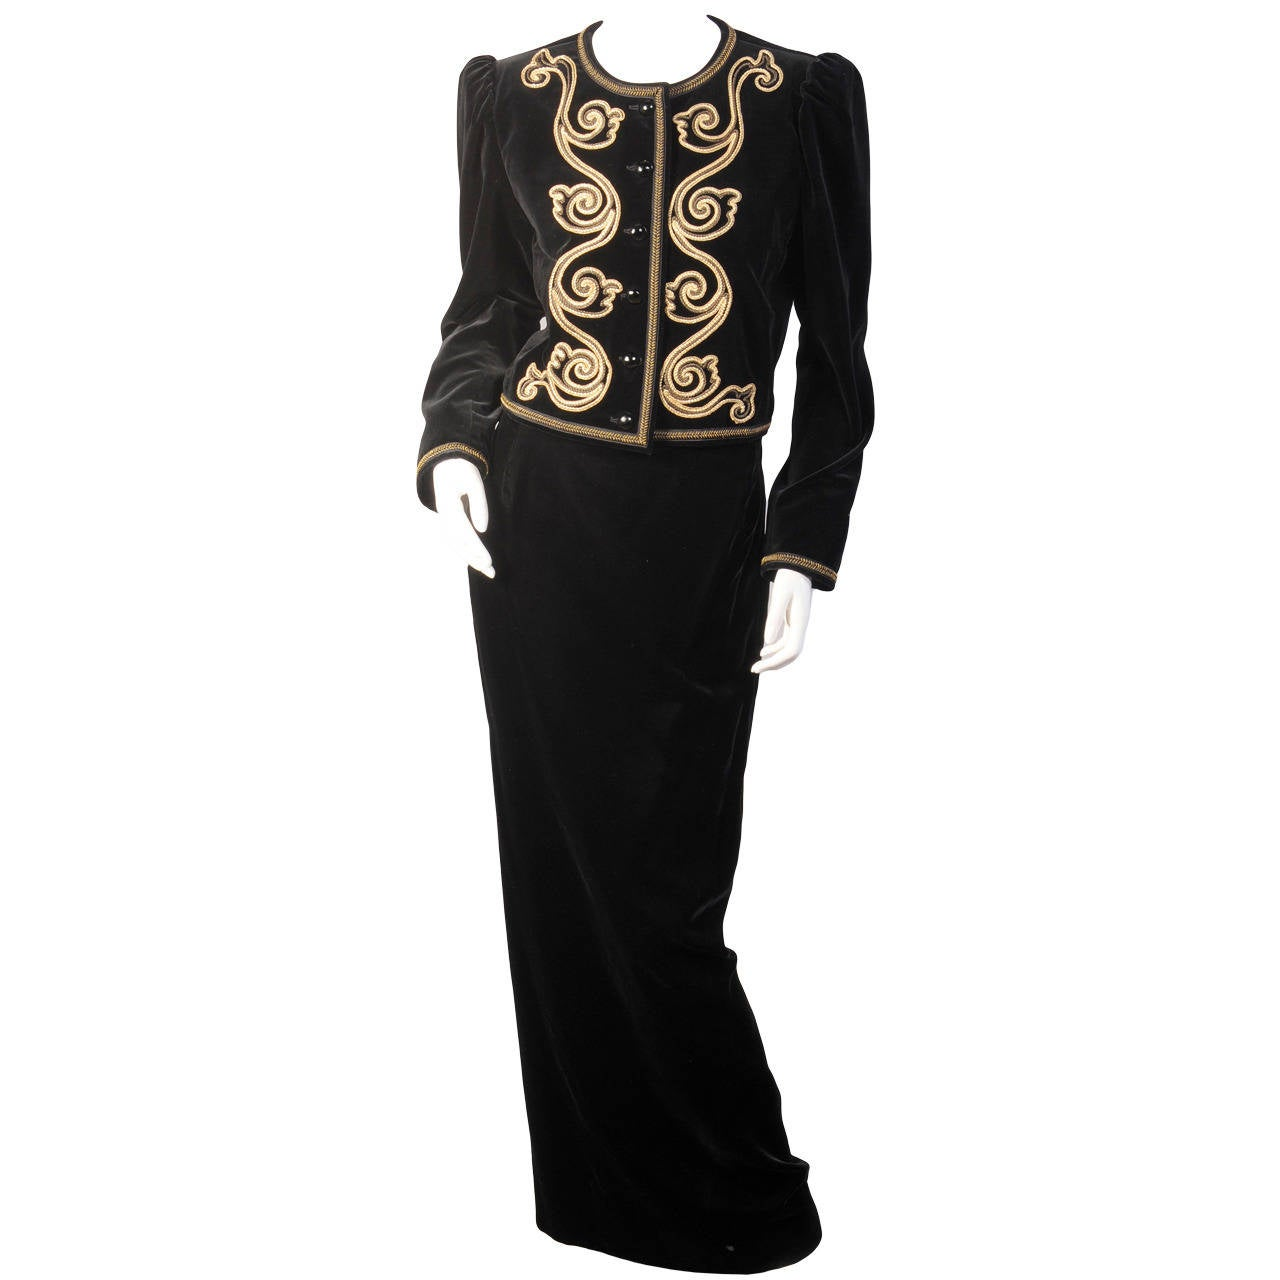 Yves Saint Laurent Evening Suit with Gold Soutache Braid